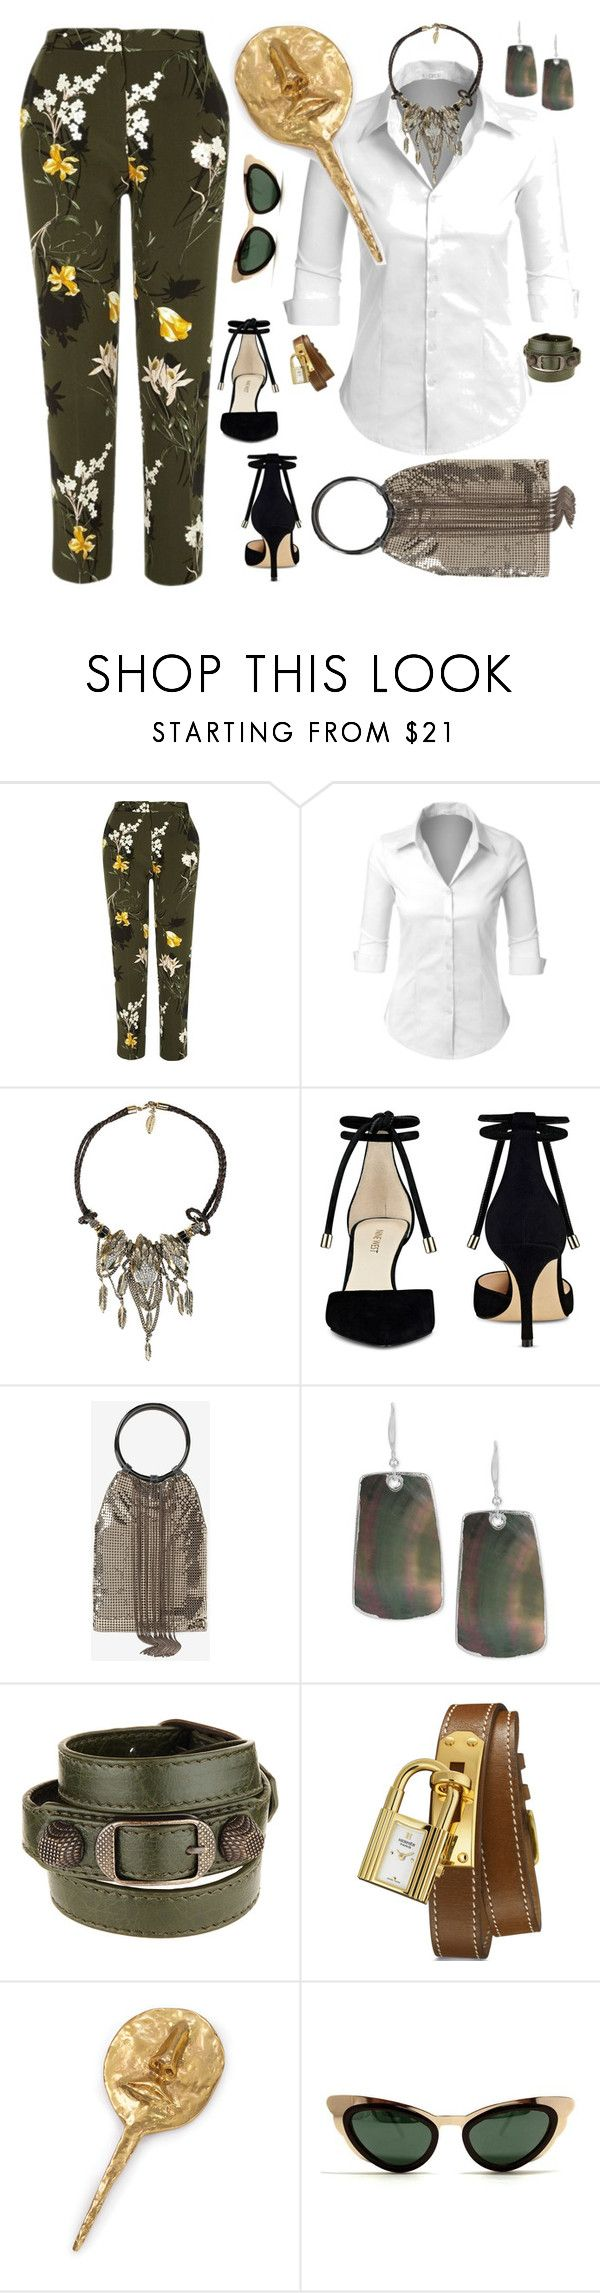 """with a White Shirt"" by petalp ❤ liked on Polyvore featuring River Island, LE3NO, Roberto Cavalli, Nine West, White House Black Market, Robert Lee Morris, Balenciaga, Hermès, Kelly Wearstler and Spitfire"